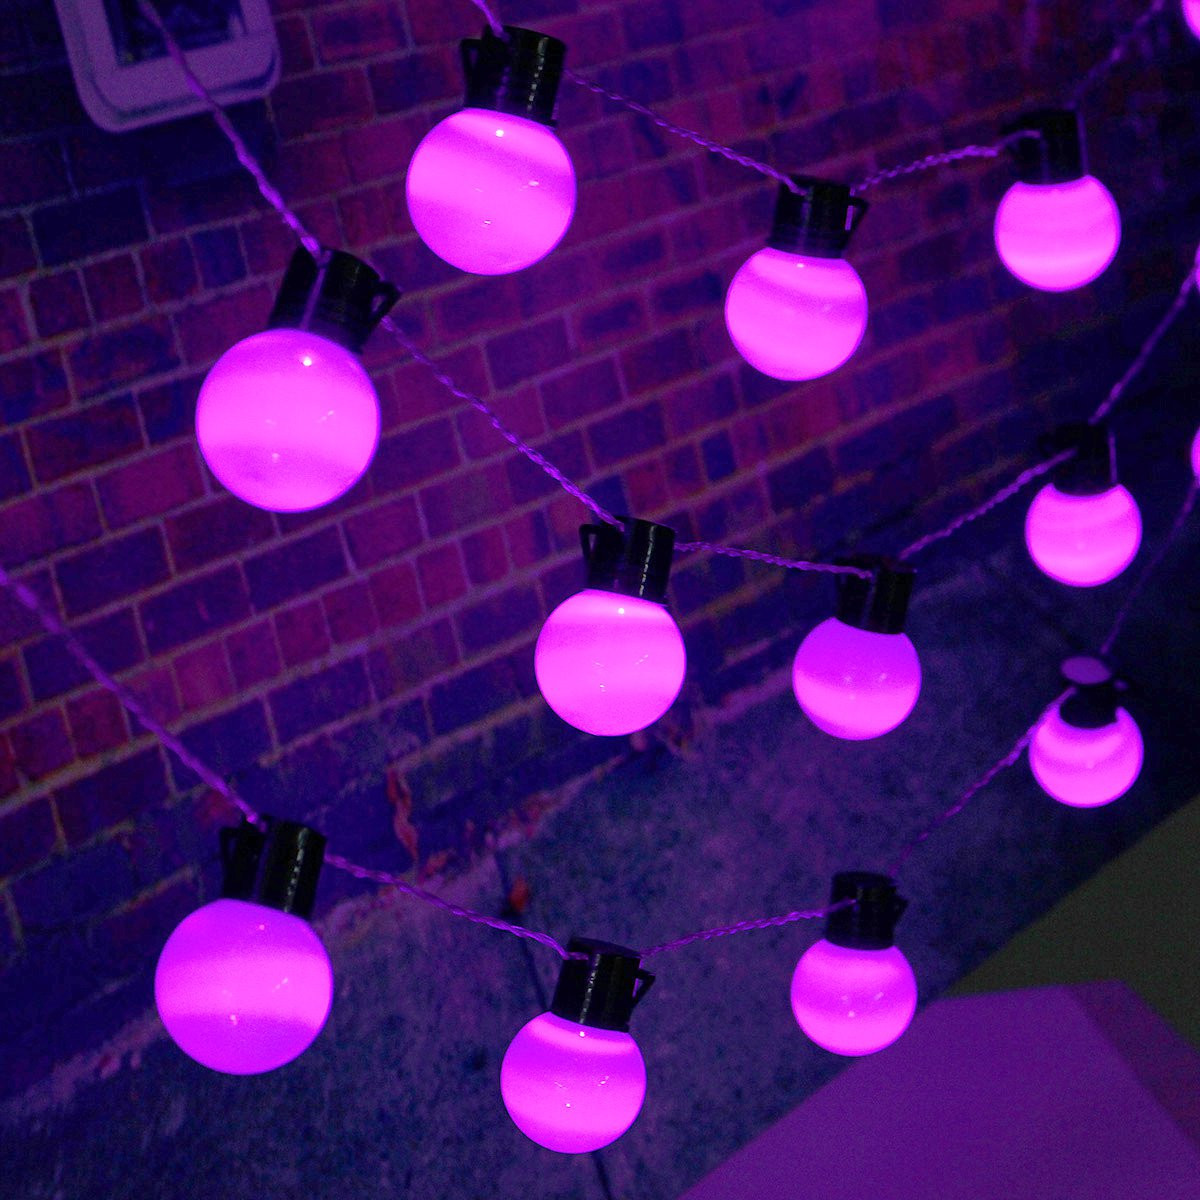 10m 38 Balls LED String Fairy Lights Party Xmas Wedding Holiday Lamp 220V EU Plug